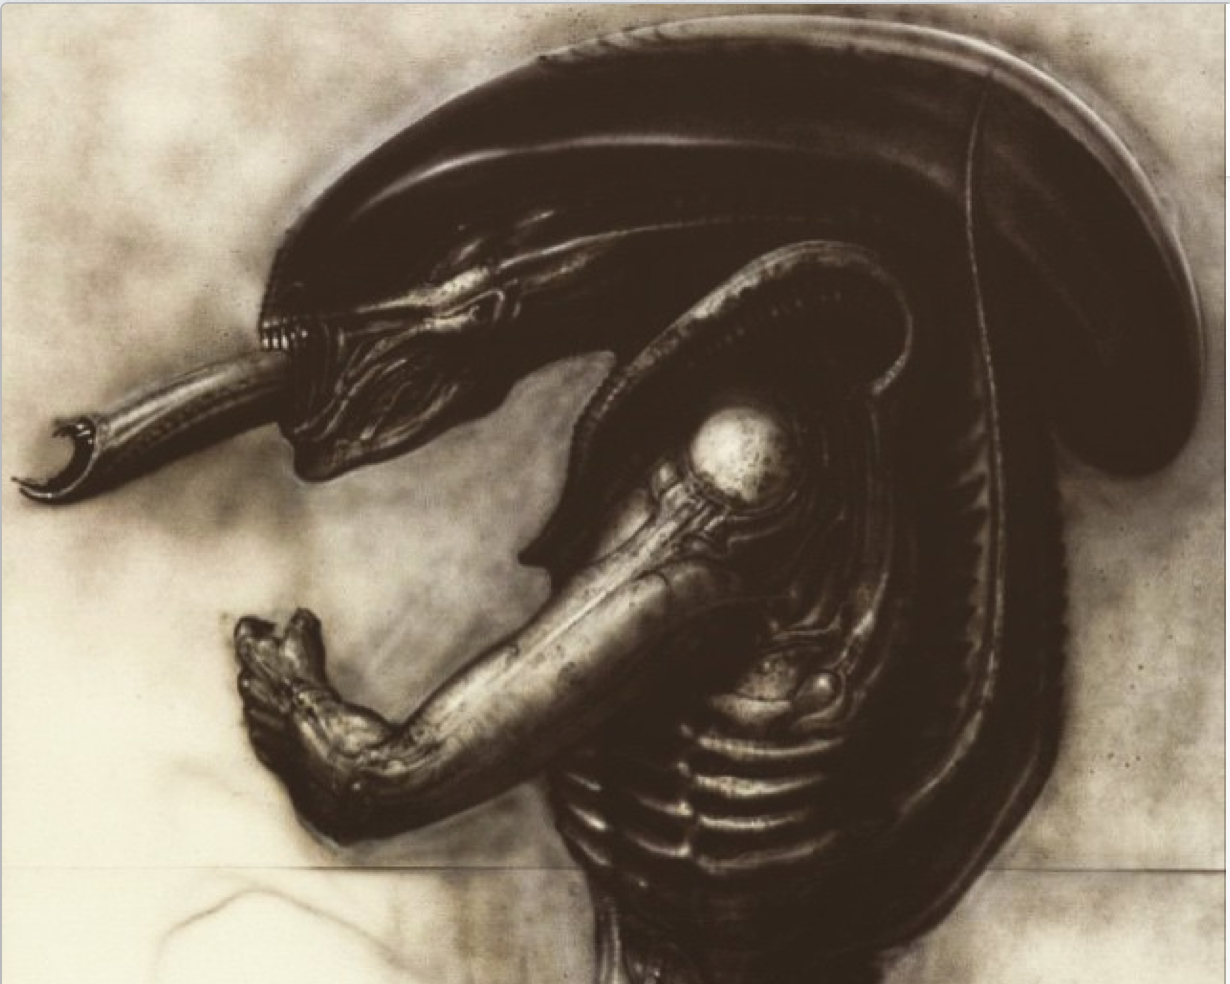 We may finally get a third decent Aliens film